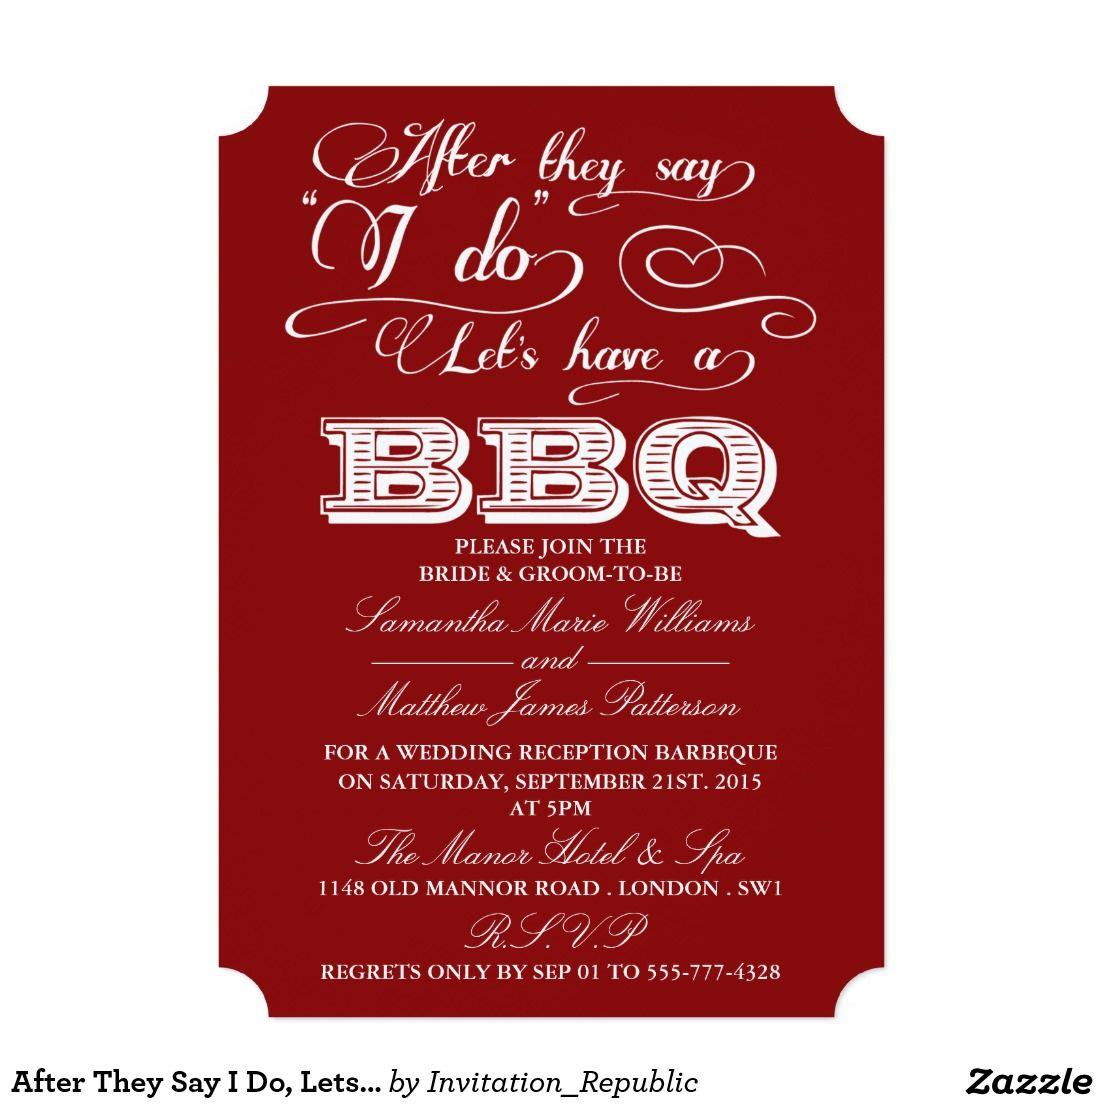 After They Say I Do, Lets Have A BBQ! - Red Invitation | Pinterest ...